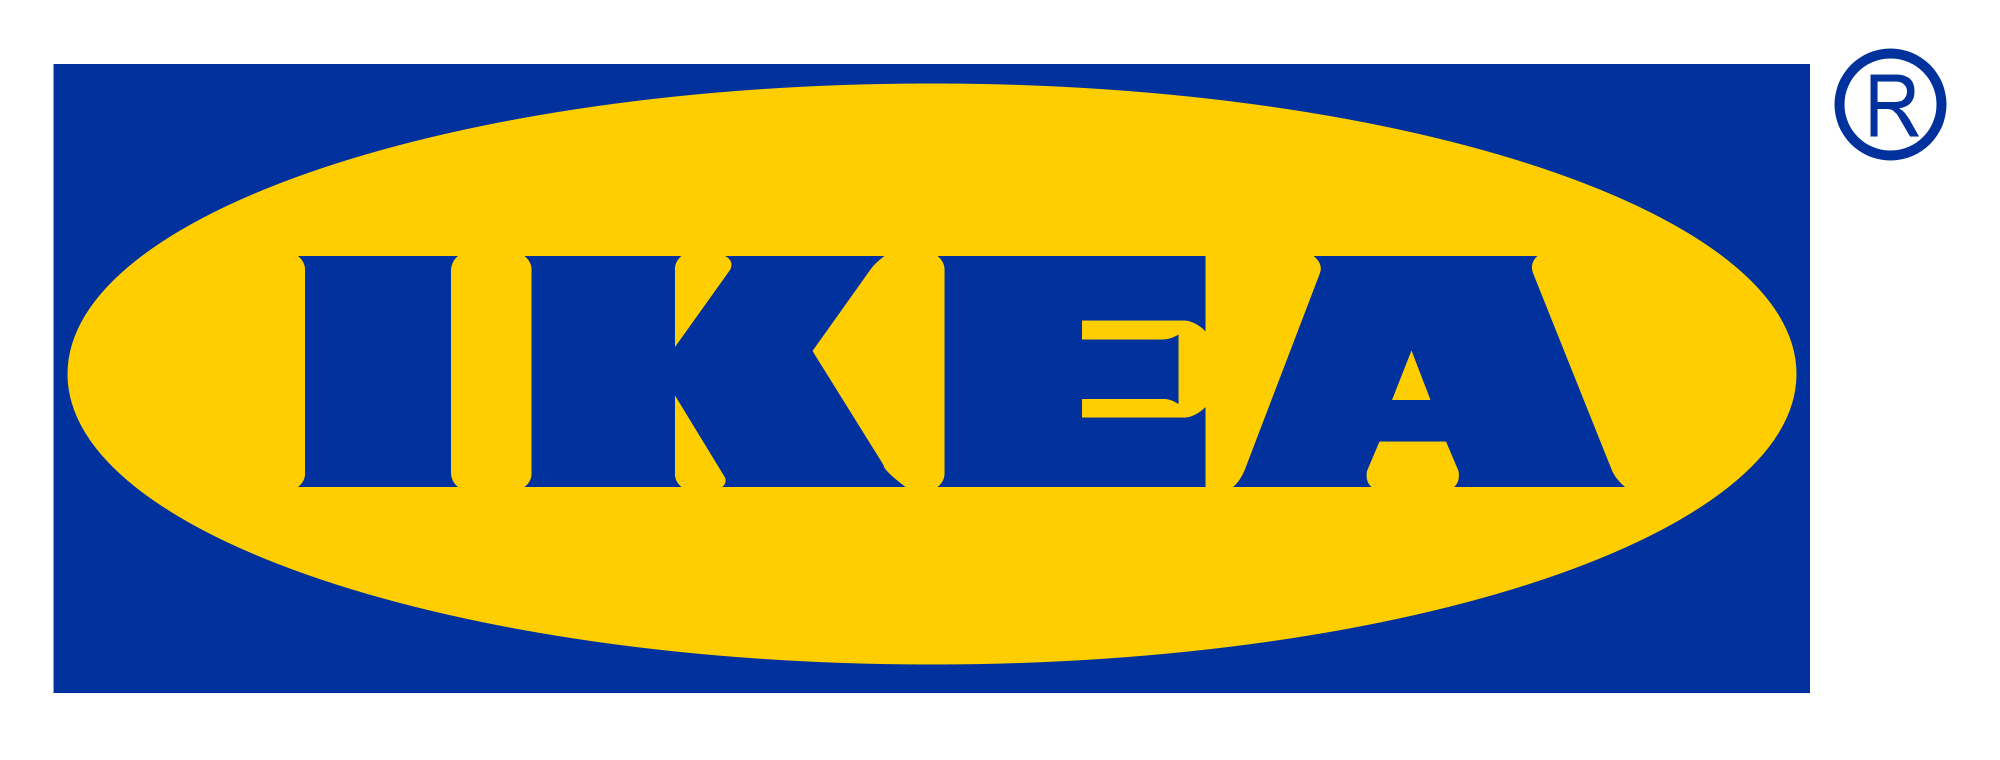 Charge card logo of IKEA